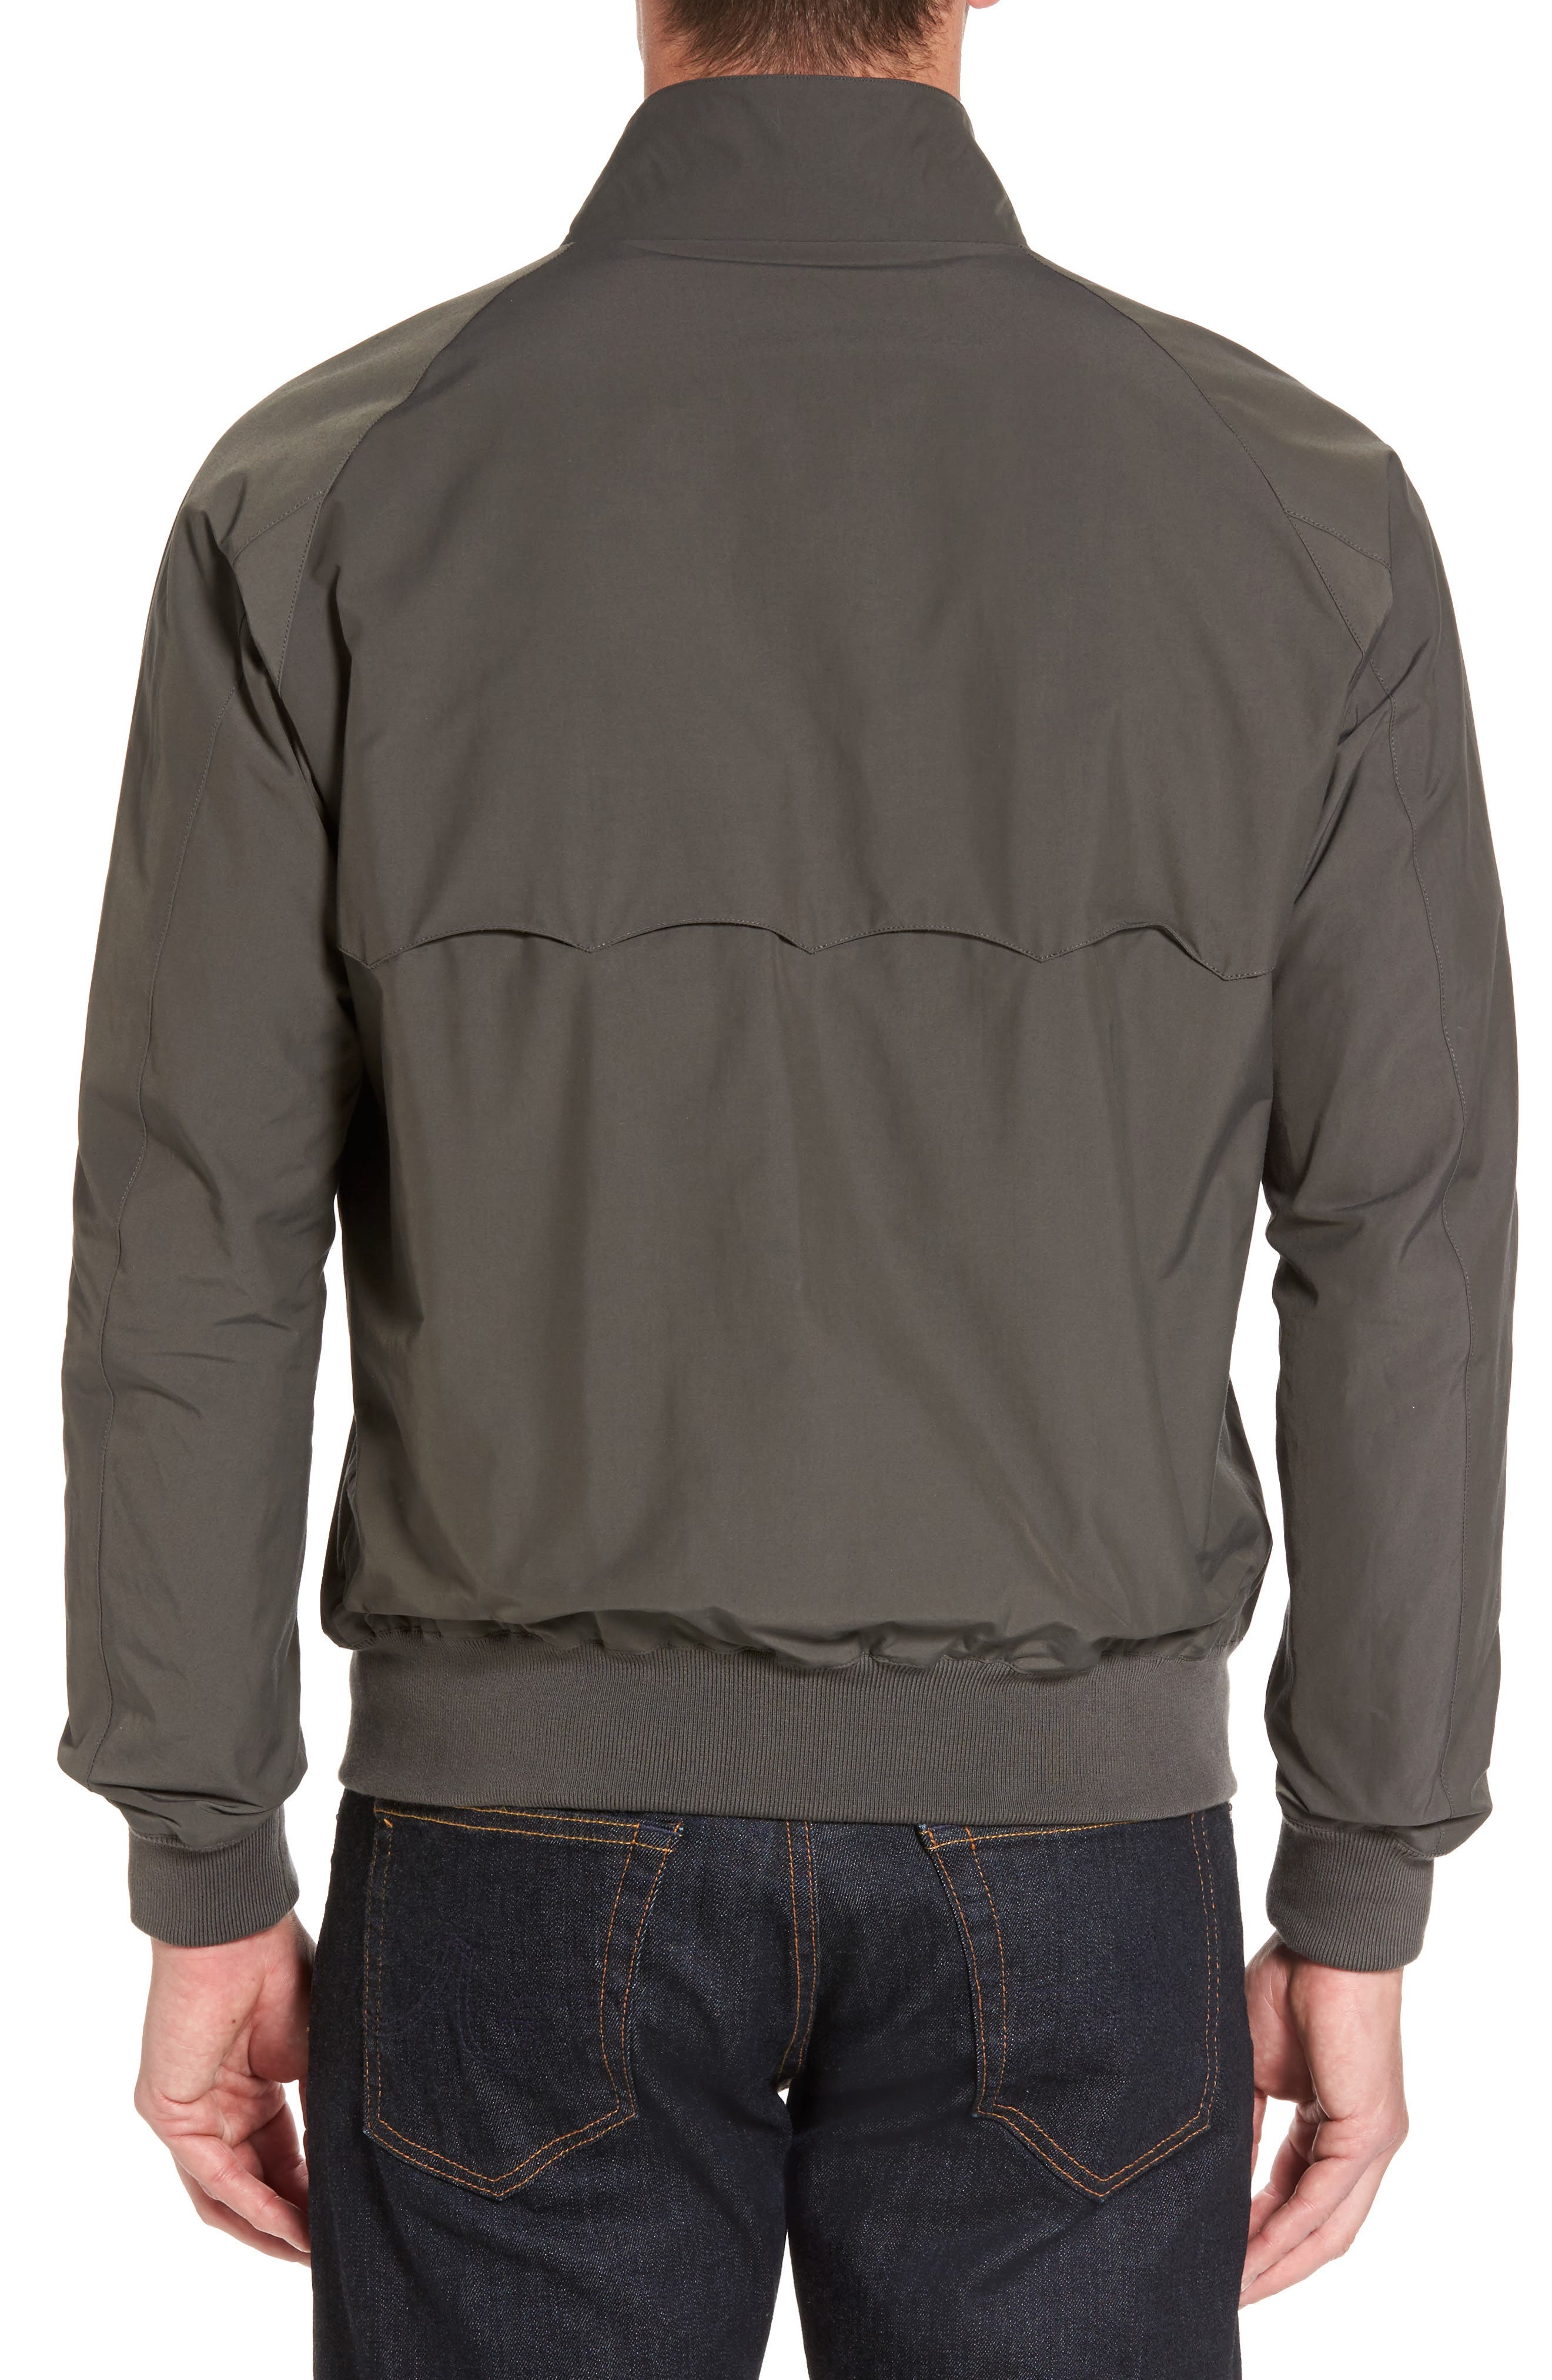 G9 Water Resistant Harrington Jacket,                             Alternate thumbnail 2, color,                             021